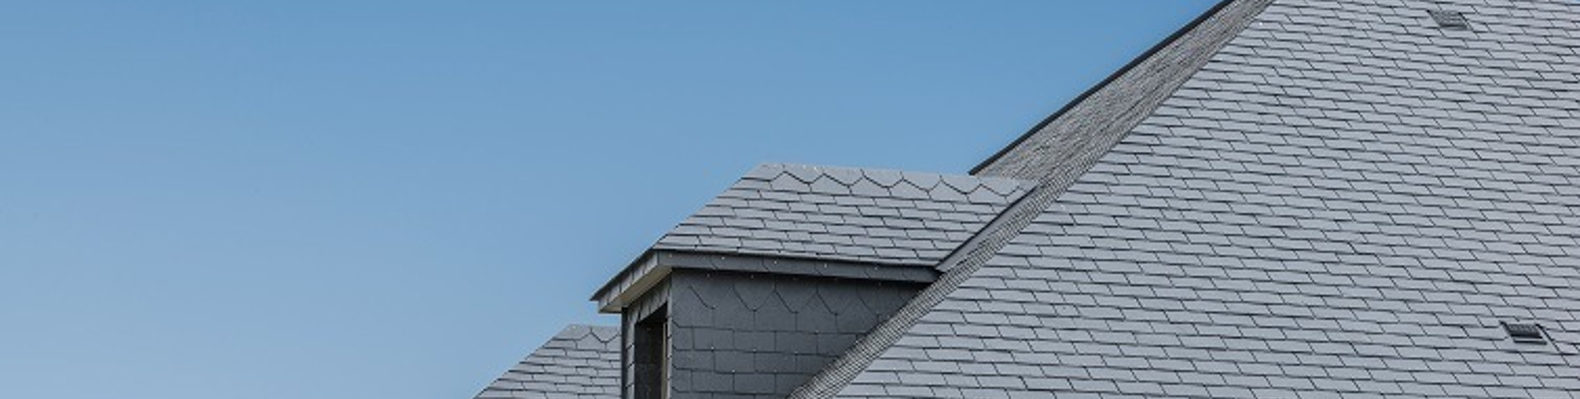 Thermoslate Tiles Hide A Smart New Solar Thermal Hot Water